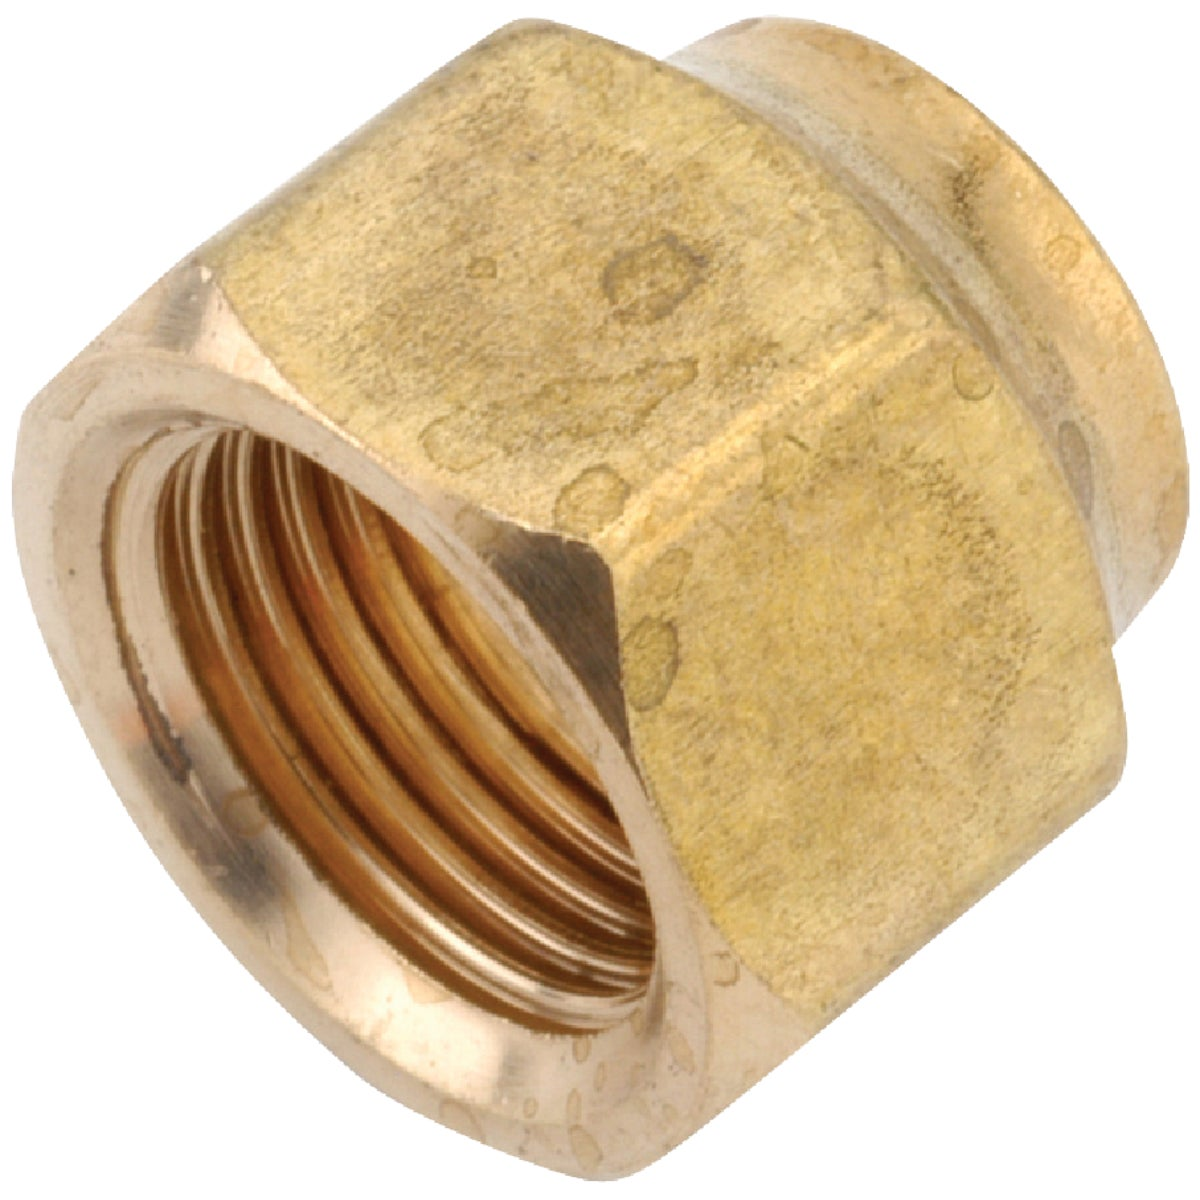 1/2X3/8 REDUCING NUT - 754020-0806 by Anderson Metals Corp